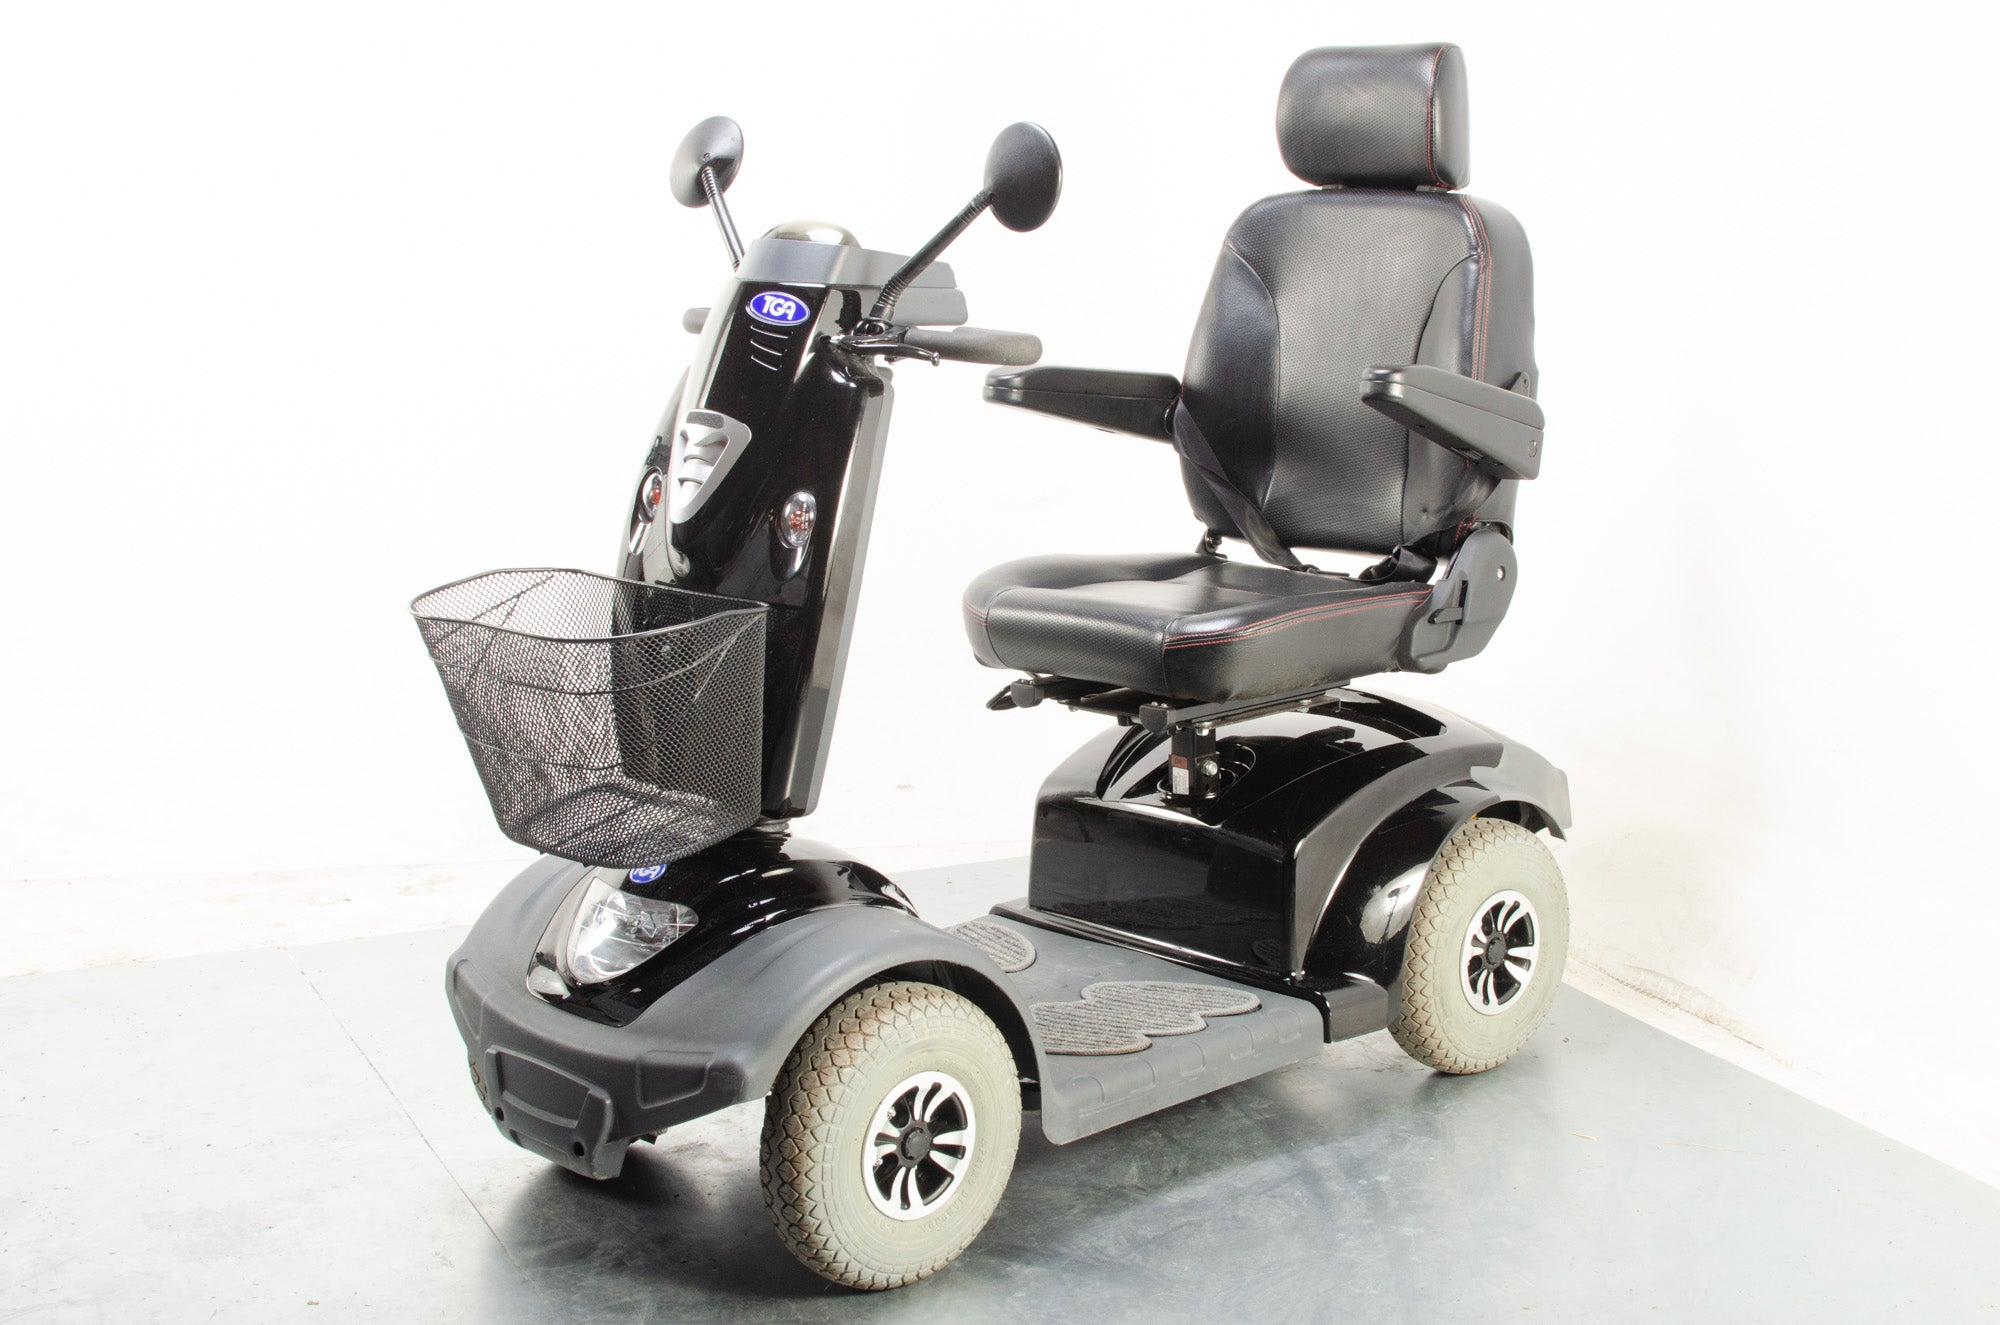 TGA Mystere Large Comfy Electric Mobility Scooter 8mph Class 3 Black